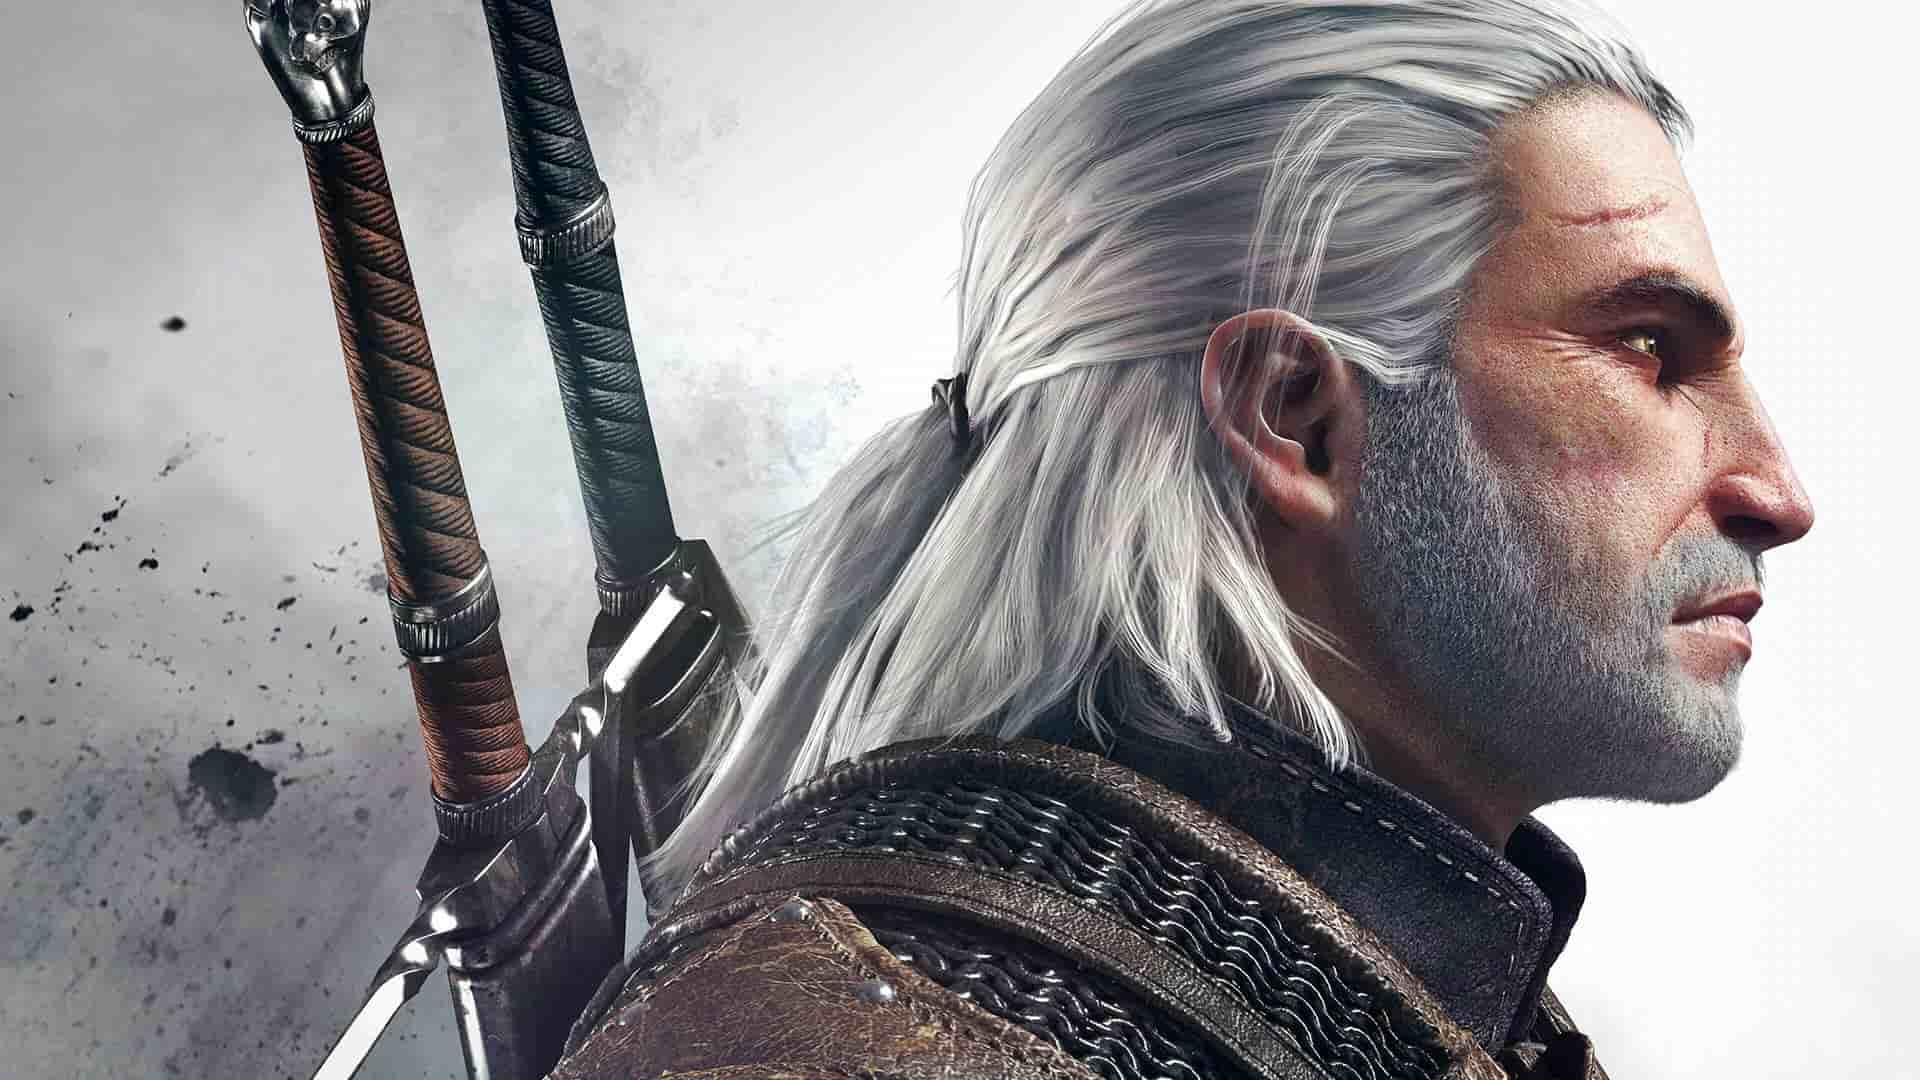 SoulCalibur IV Geralt Gameplay Clip Confirms The Witcher Crossover